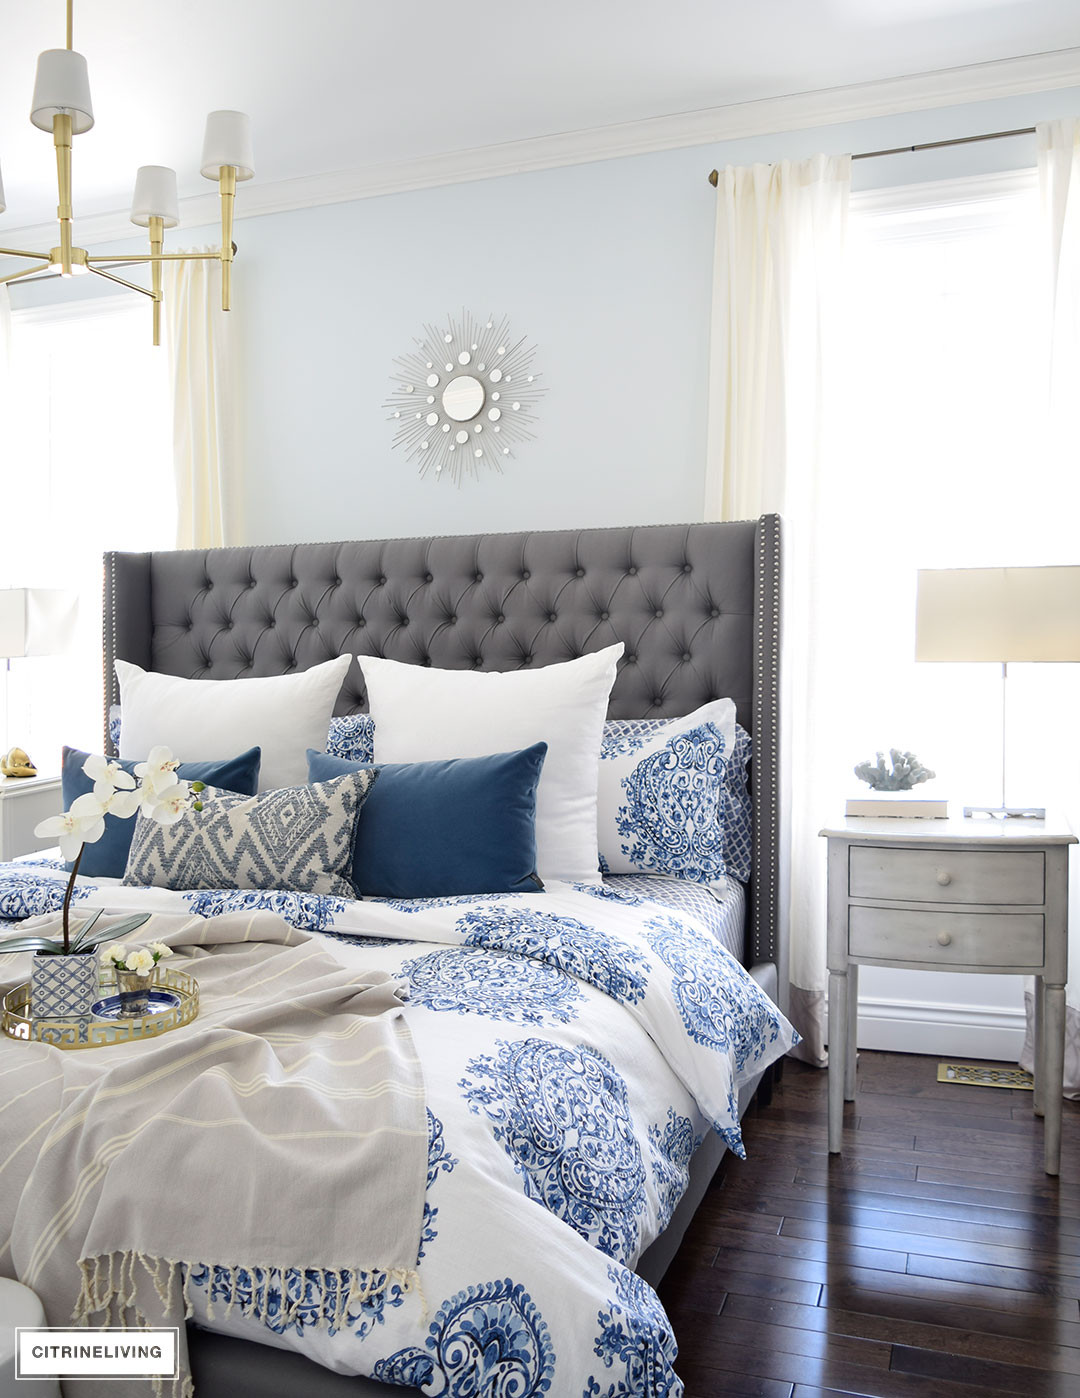 Best ideas about Blue And White Bedroom . Save or Pin CITRINELIVING SPRING IN FULL SWING HOME TOUR 2017 Now.